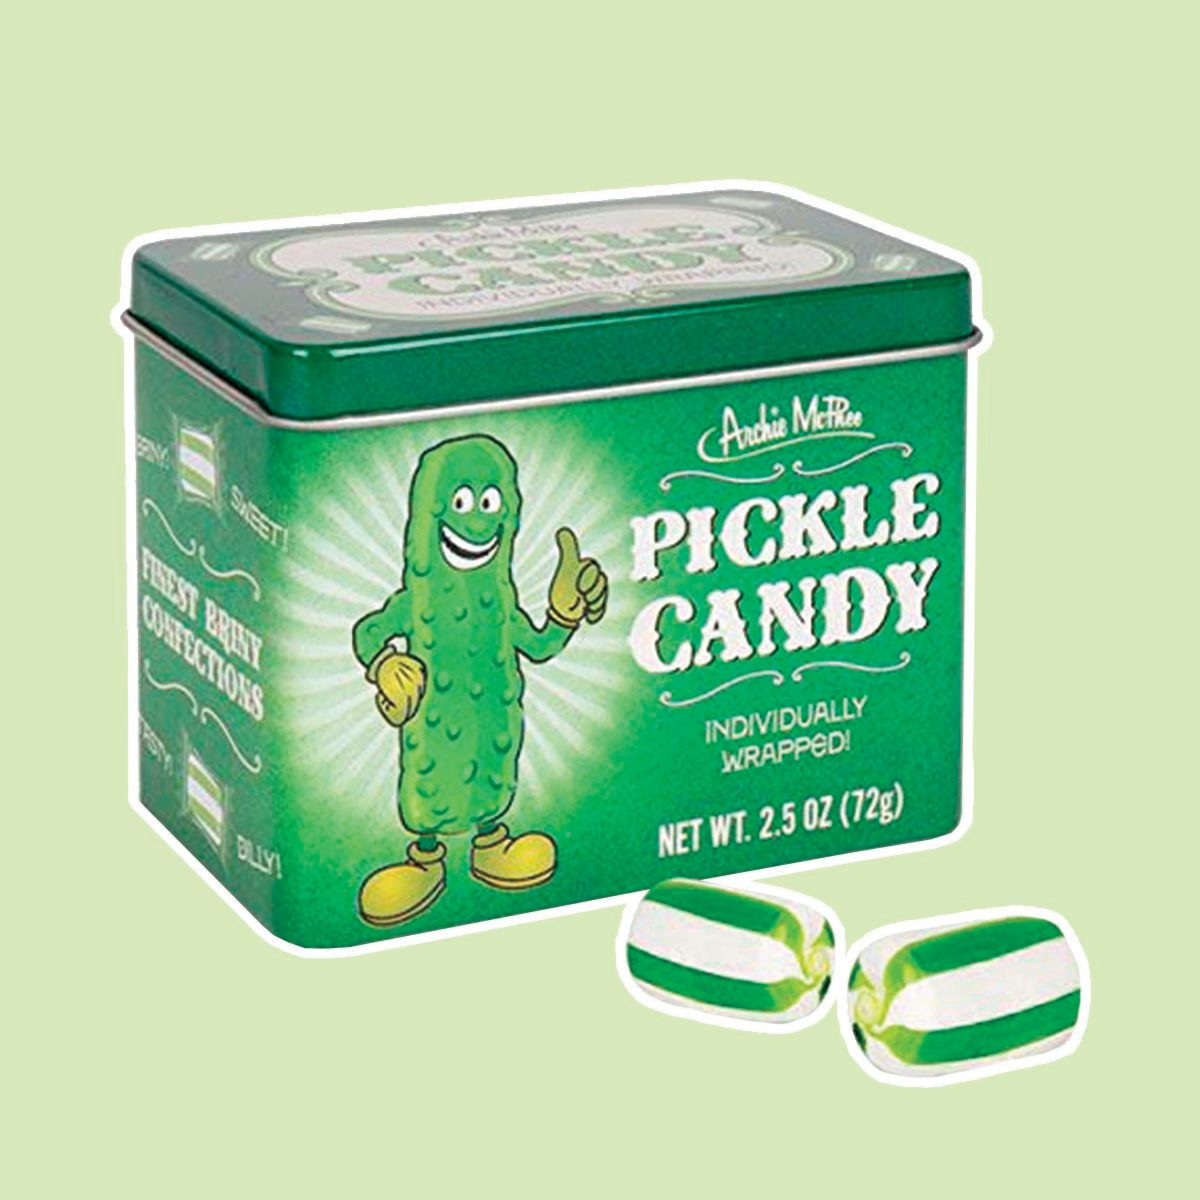 Archie McPhee Pickle Candy in Tin